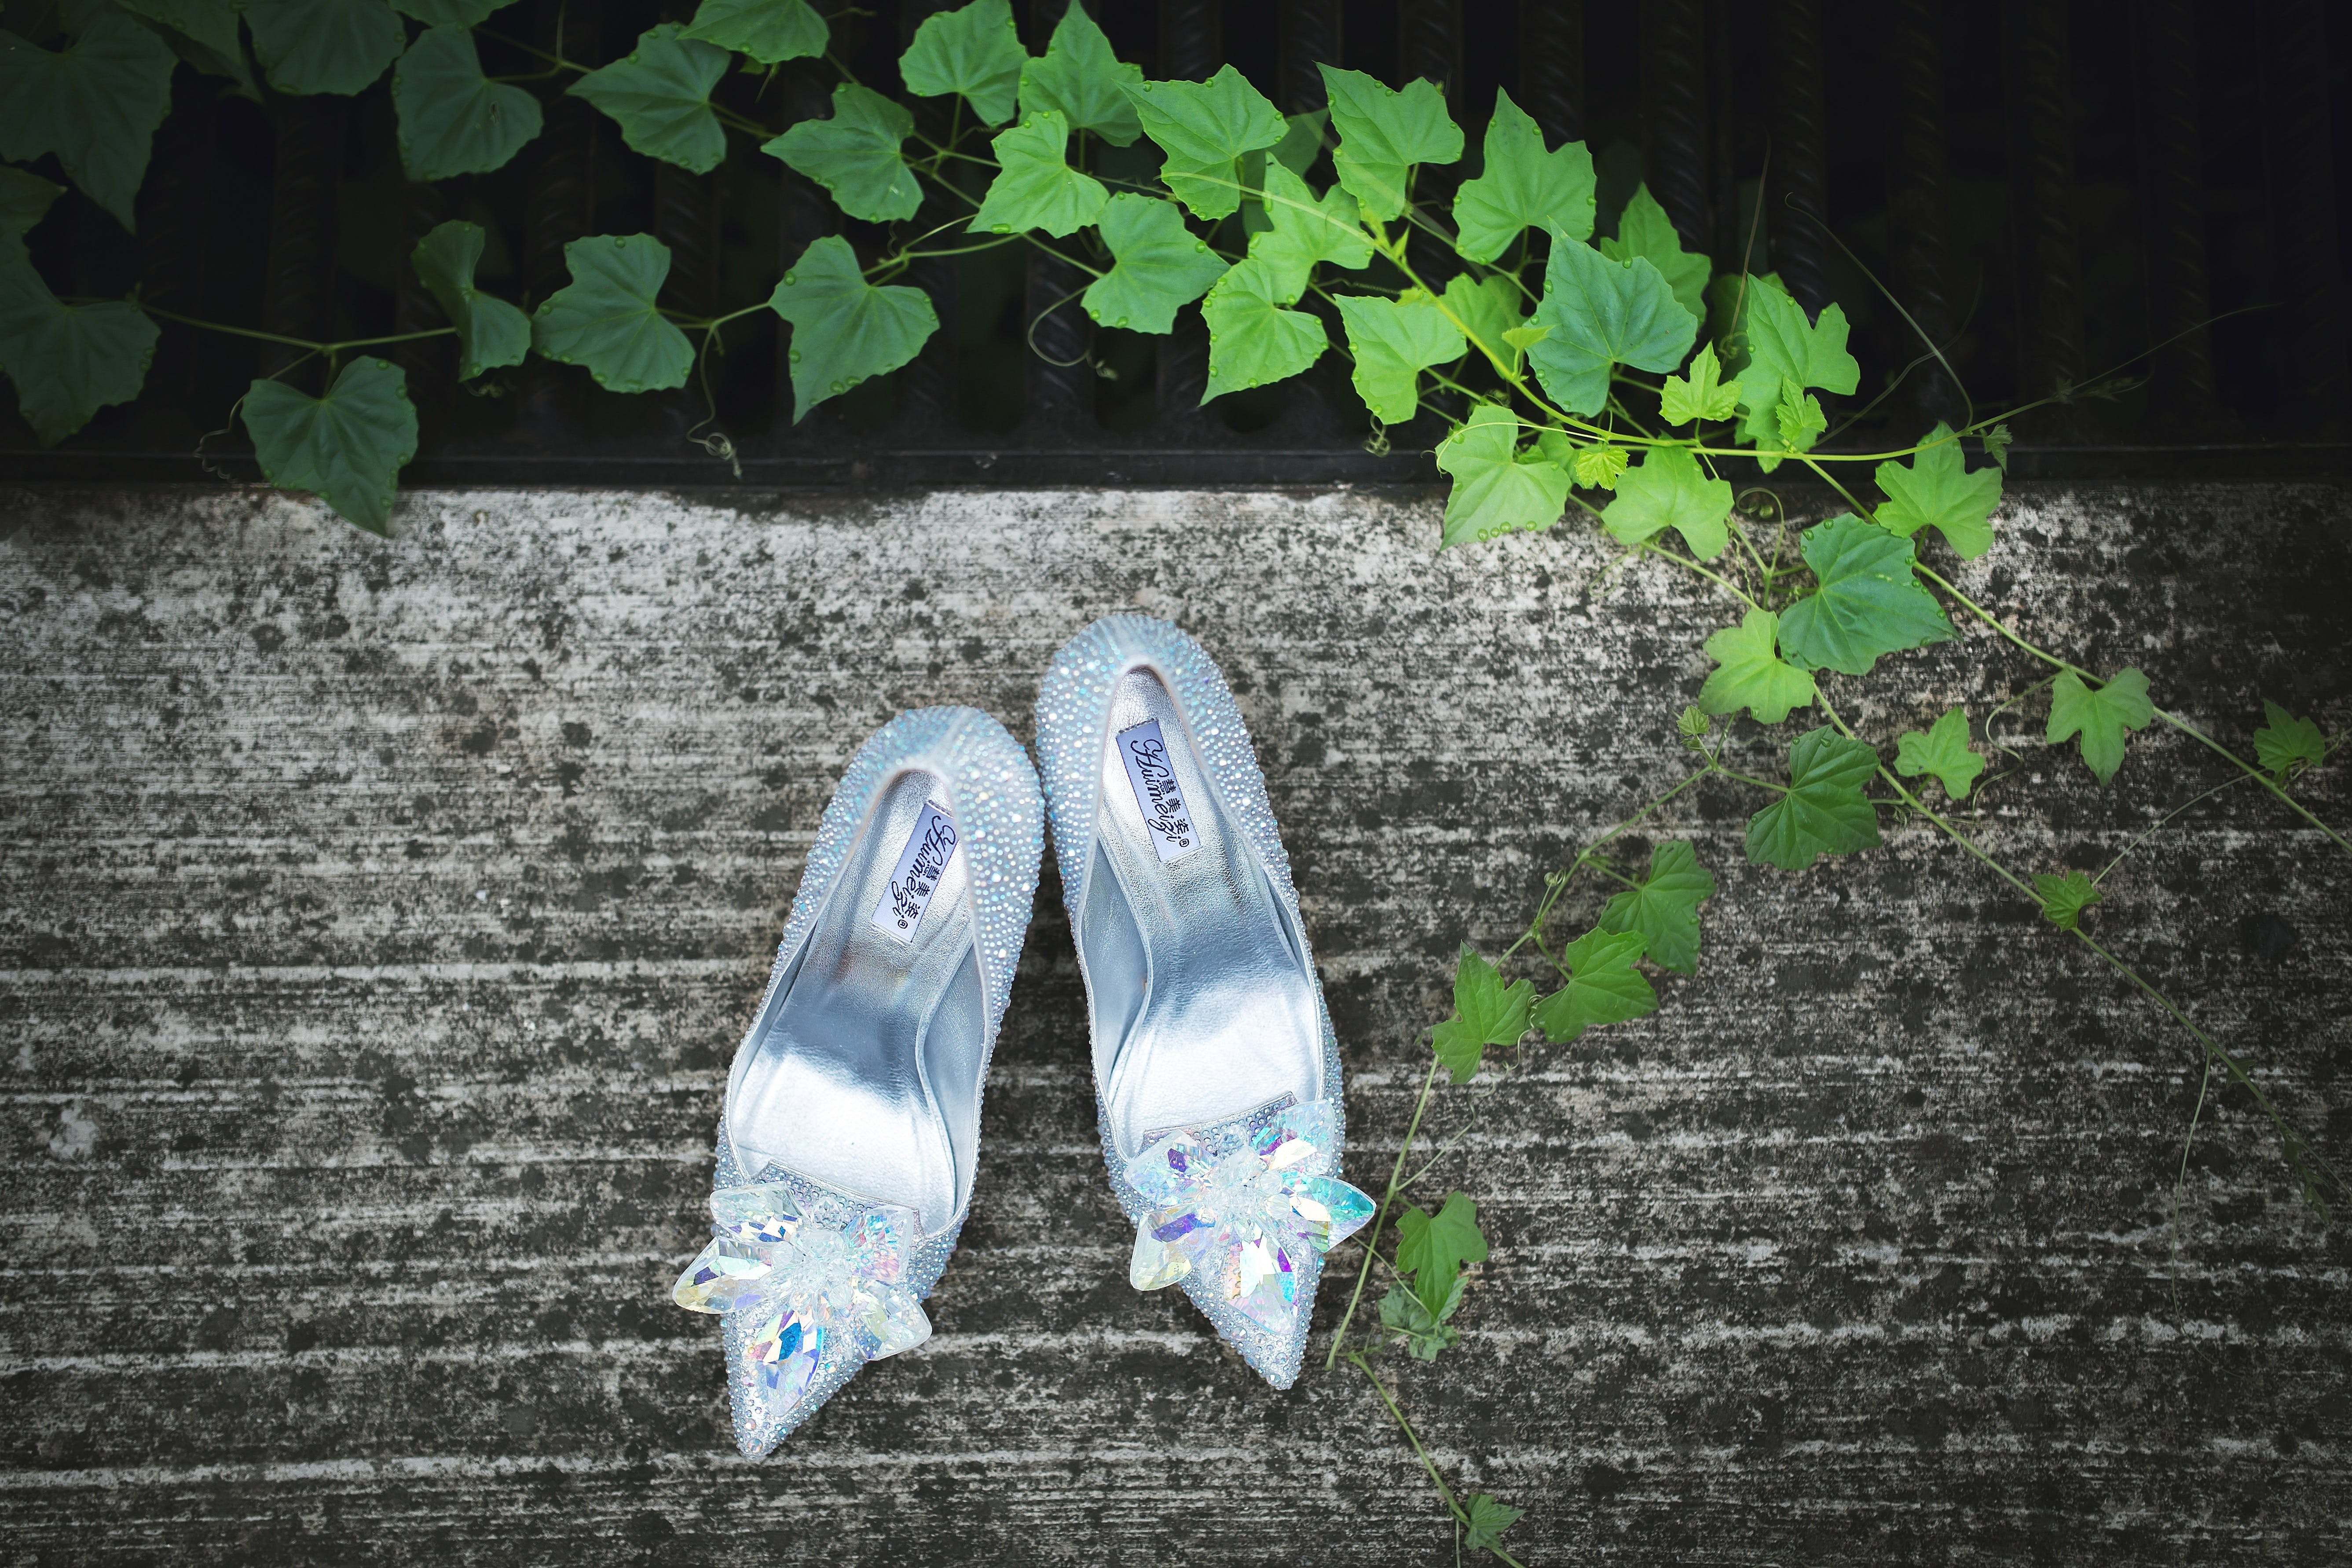 Pair of Silver Pointed-toe Heeled Sandals on Gray Surface